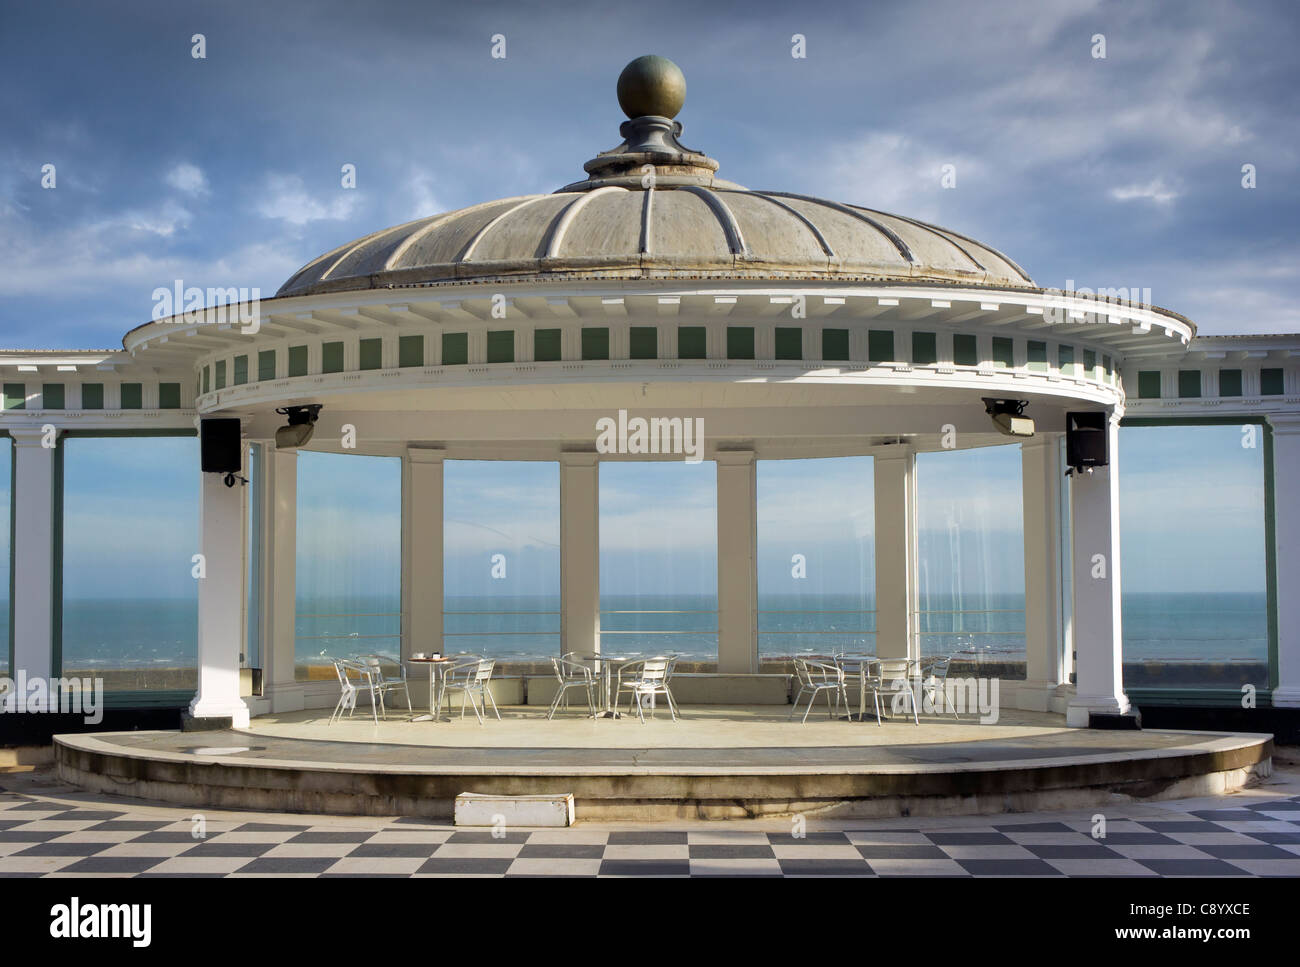 Scarborough Spa Bandstand - Stock Image